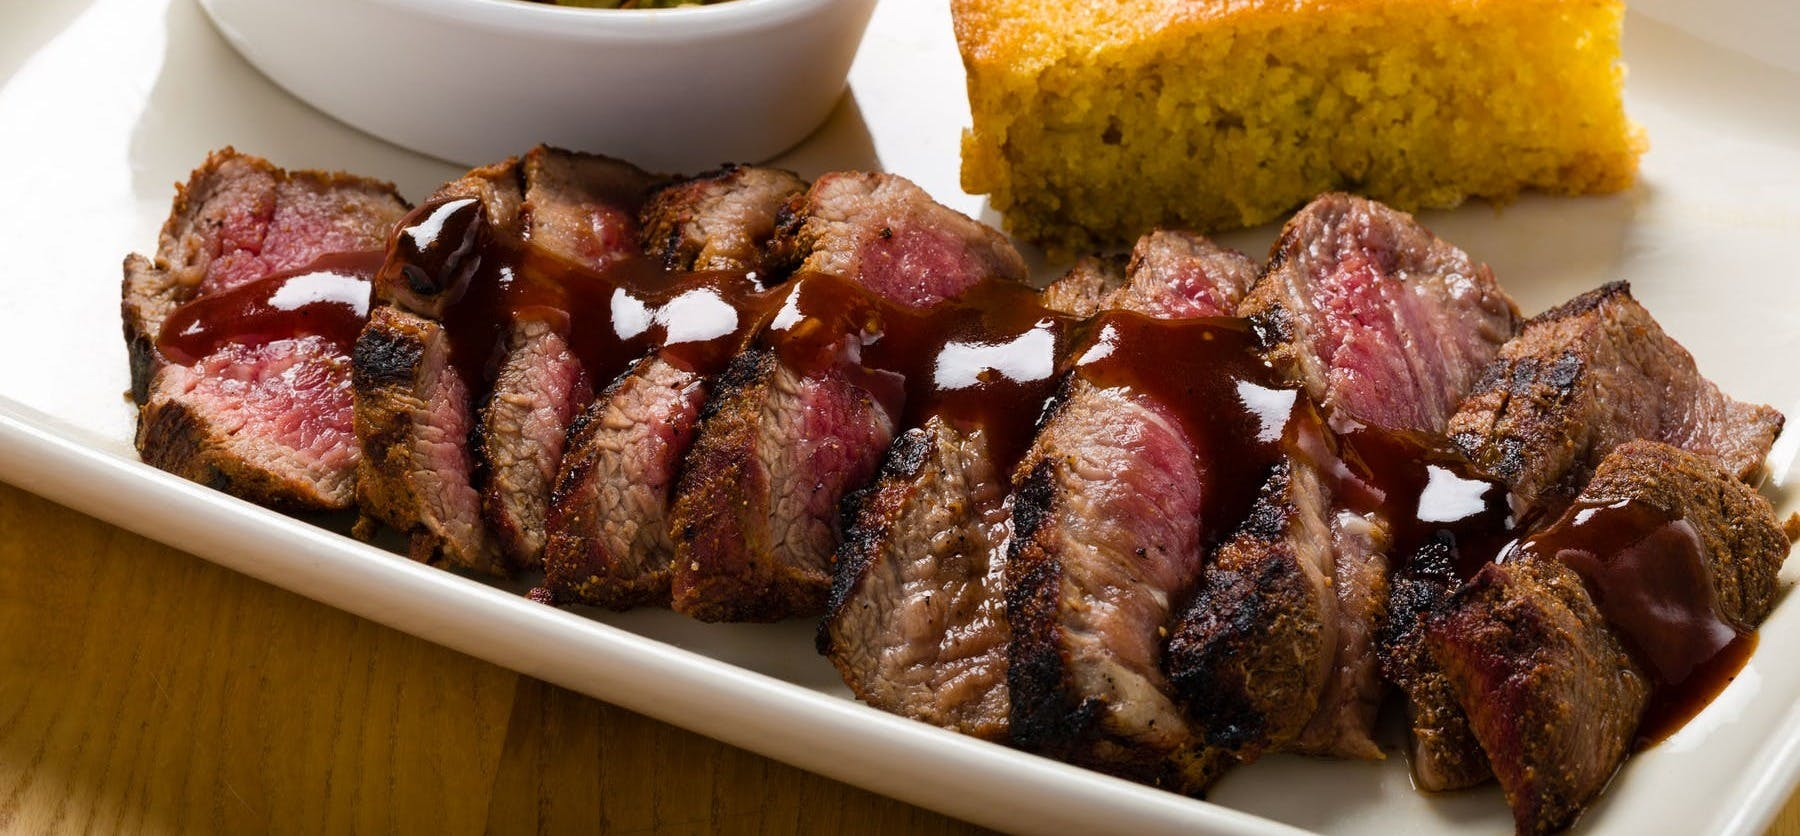 steak slices with barbecue sauce, corn bread and coleslaw